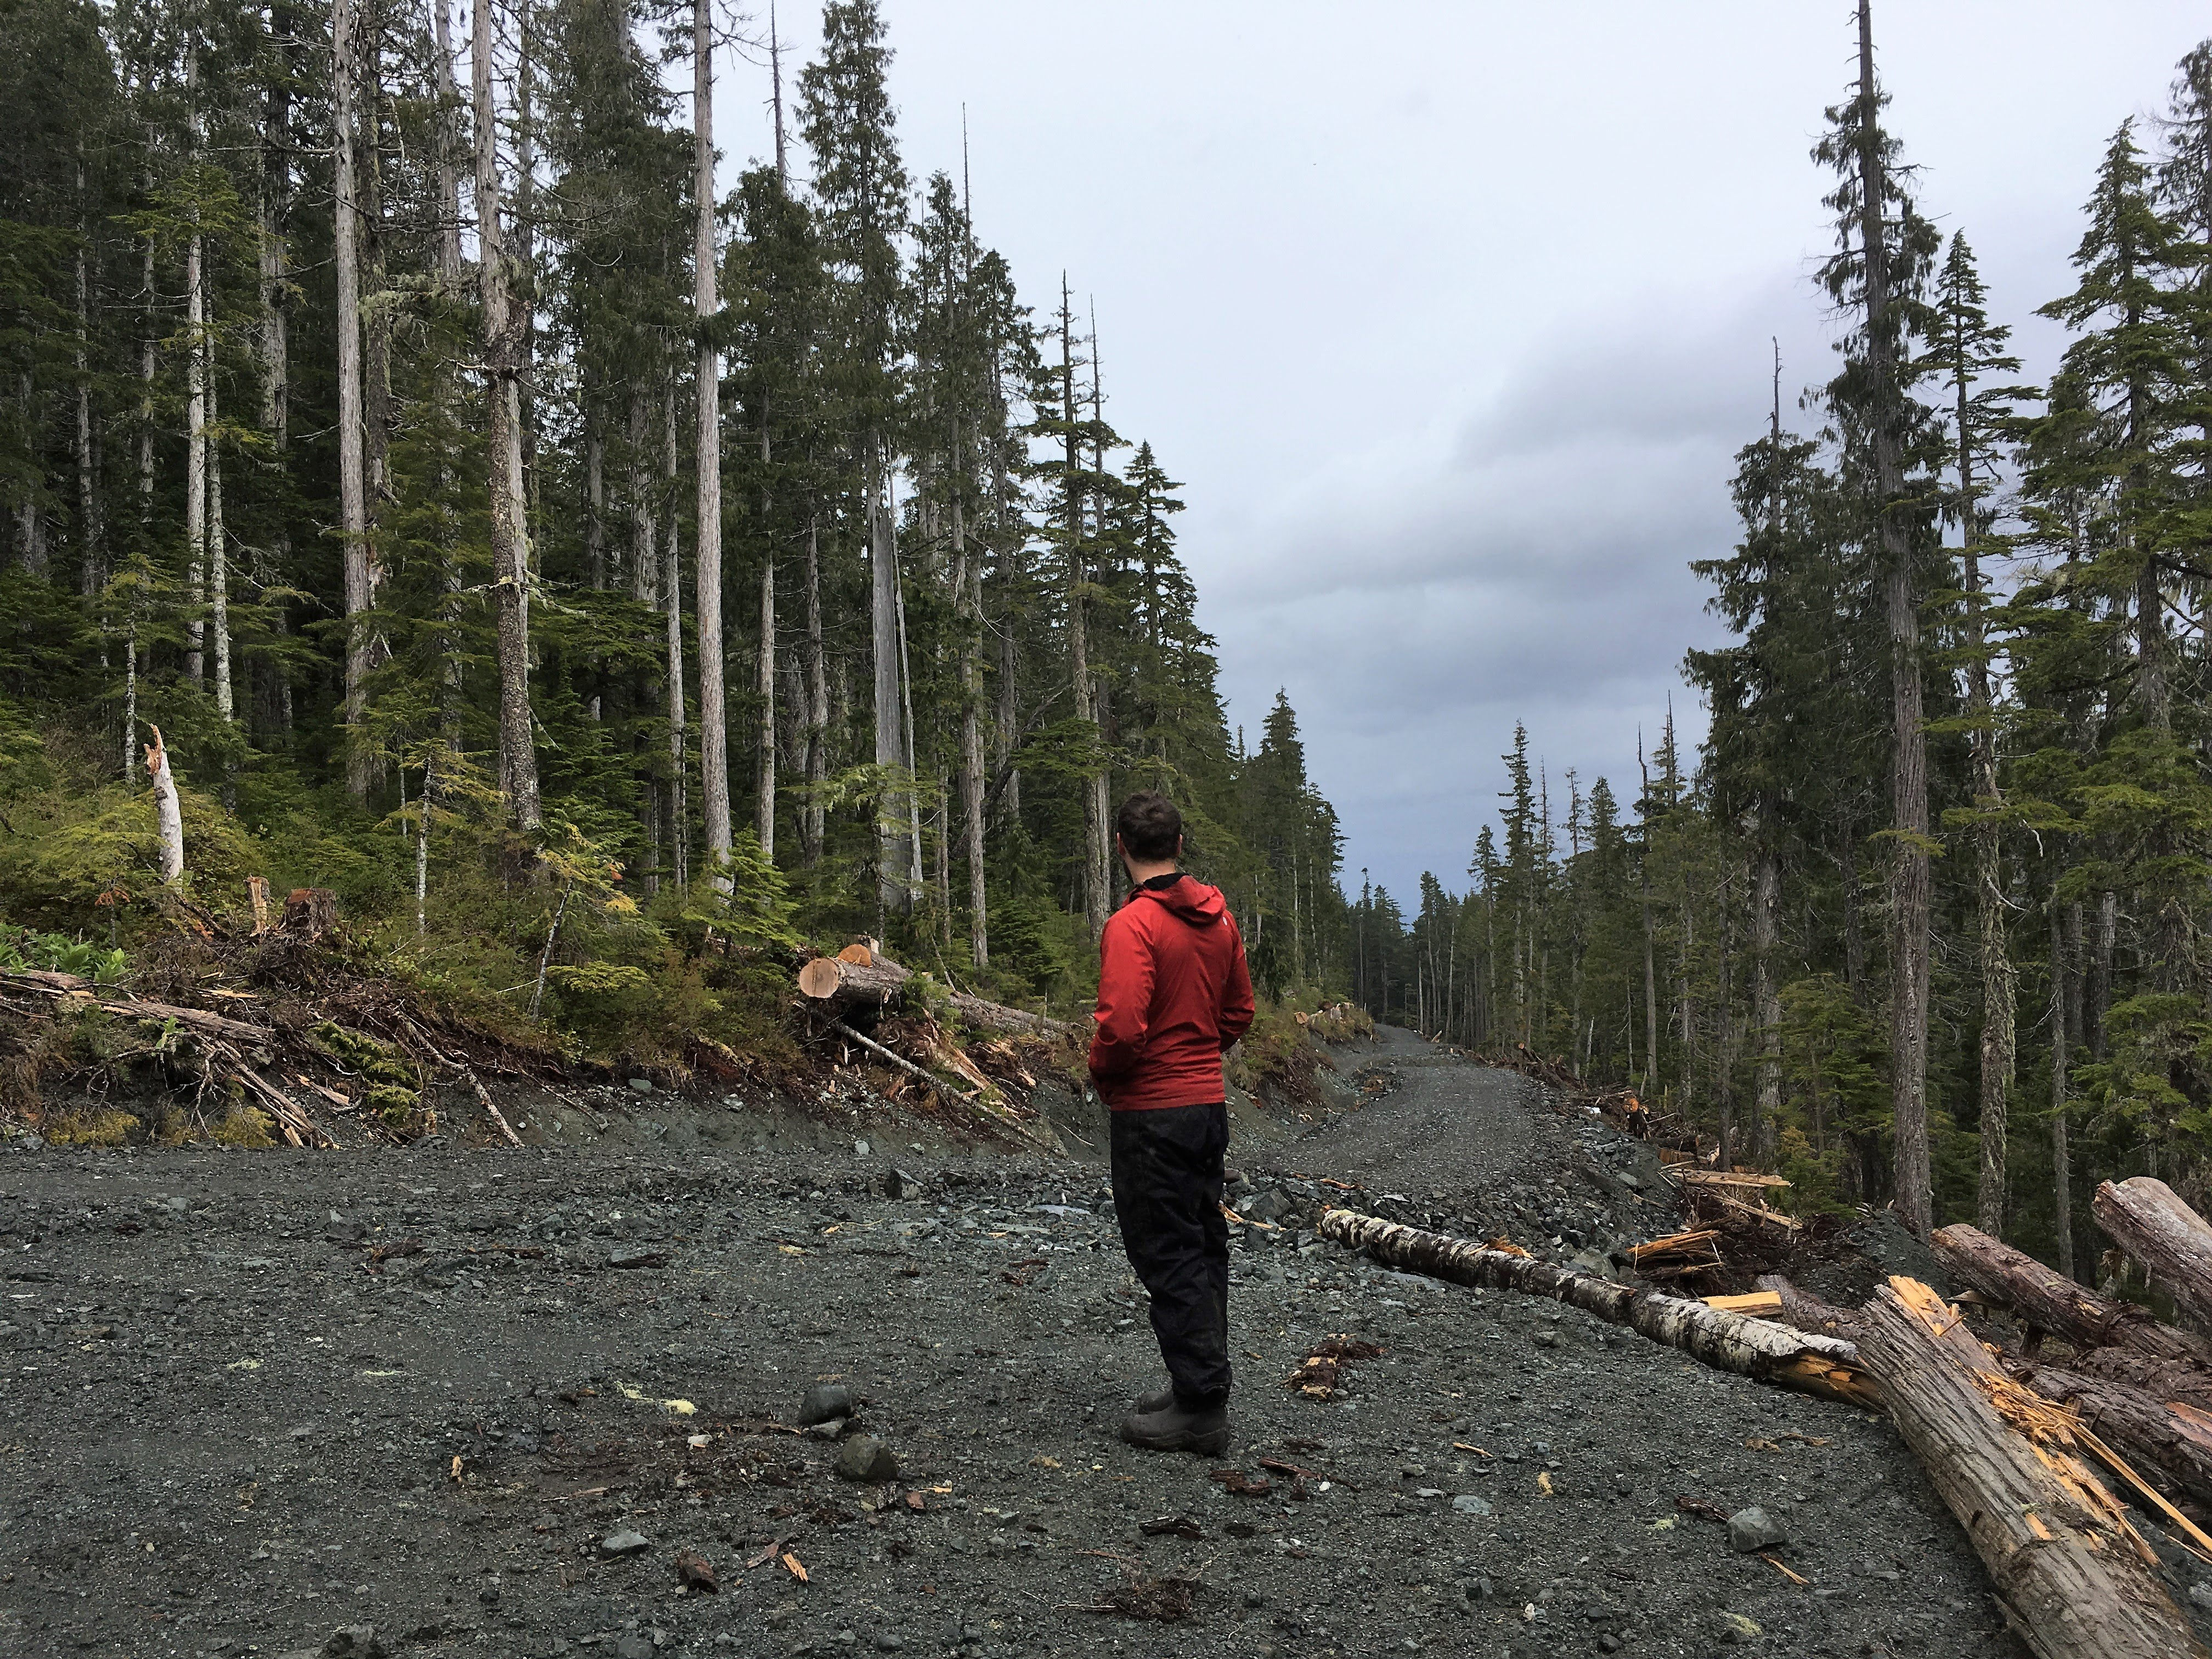 Wilderness Committee Vancouver Island Campaigner Torrance Coste on new BCTS logging road in Shmidt Creek.